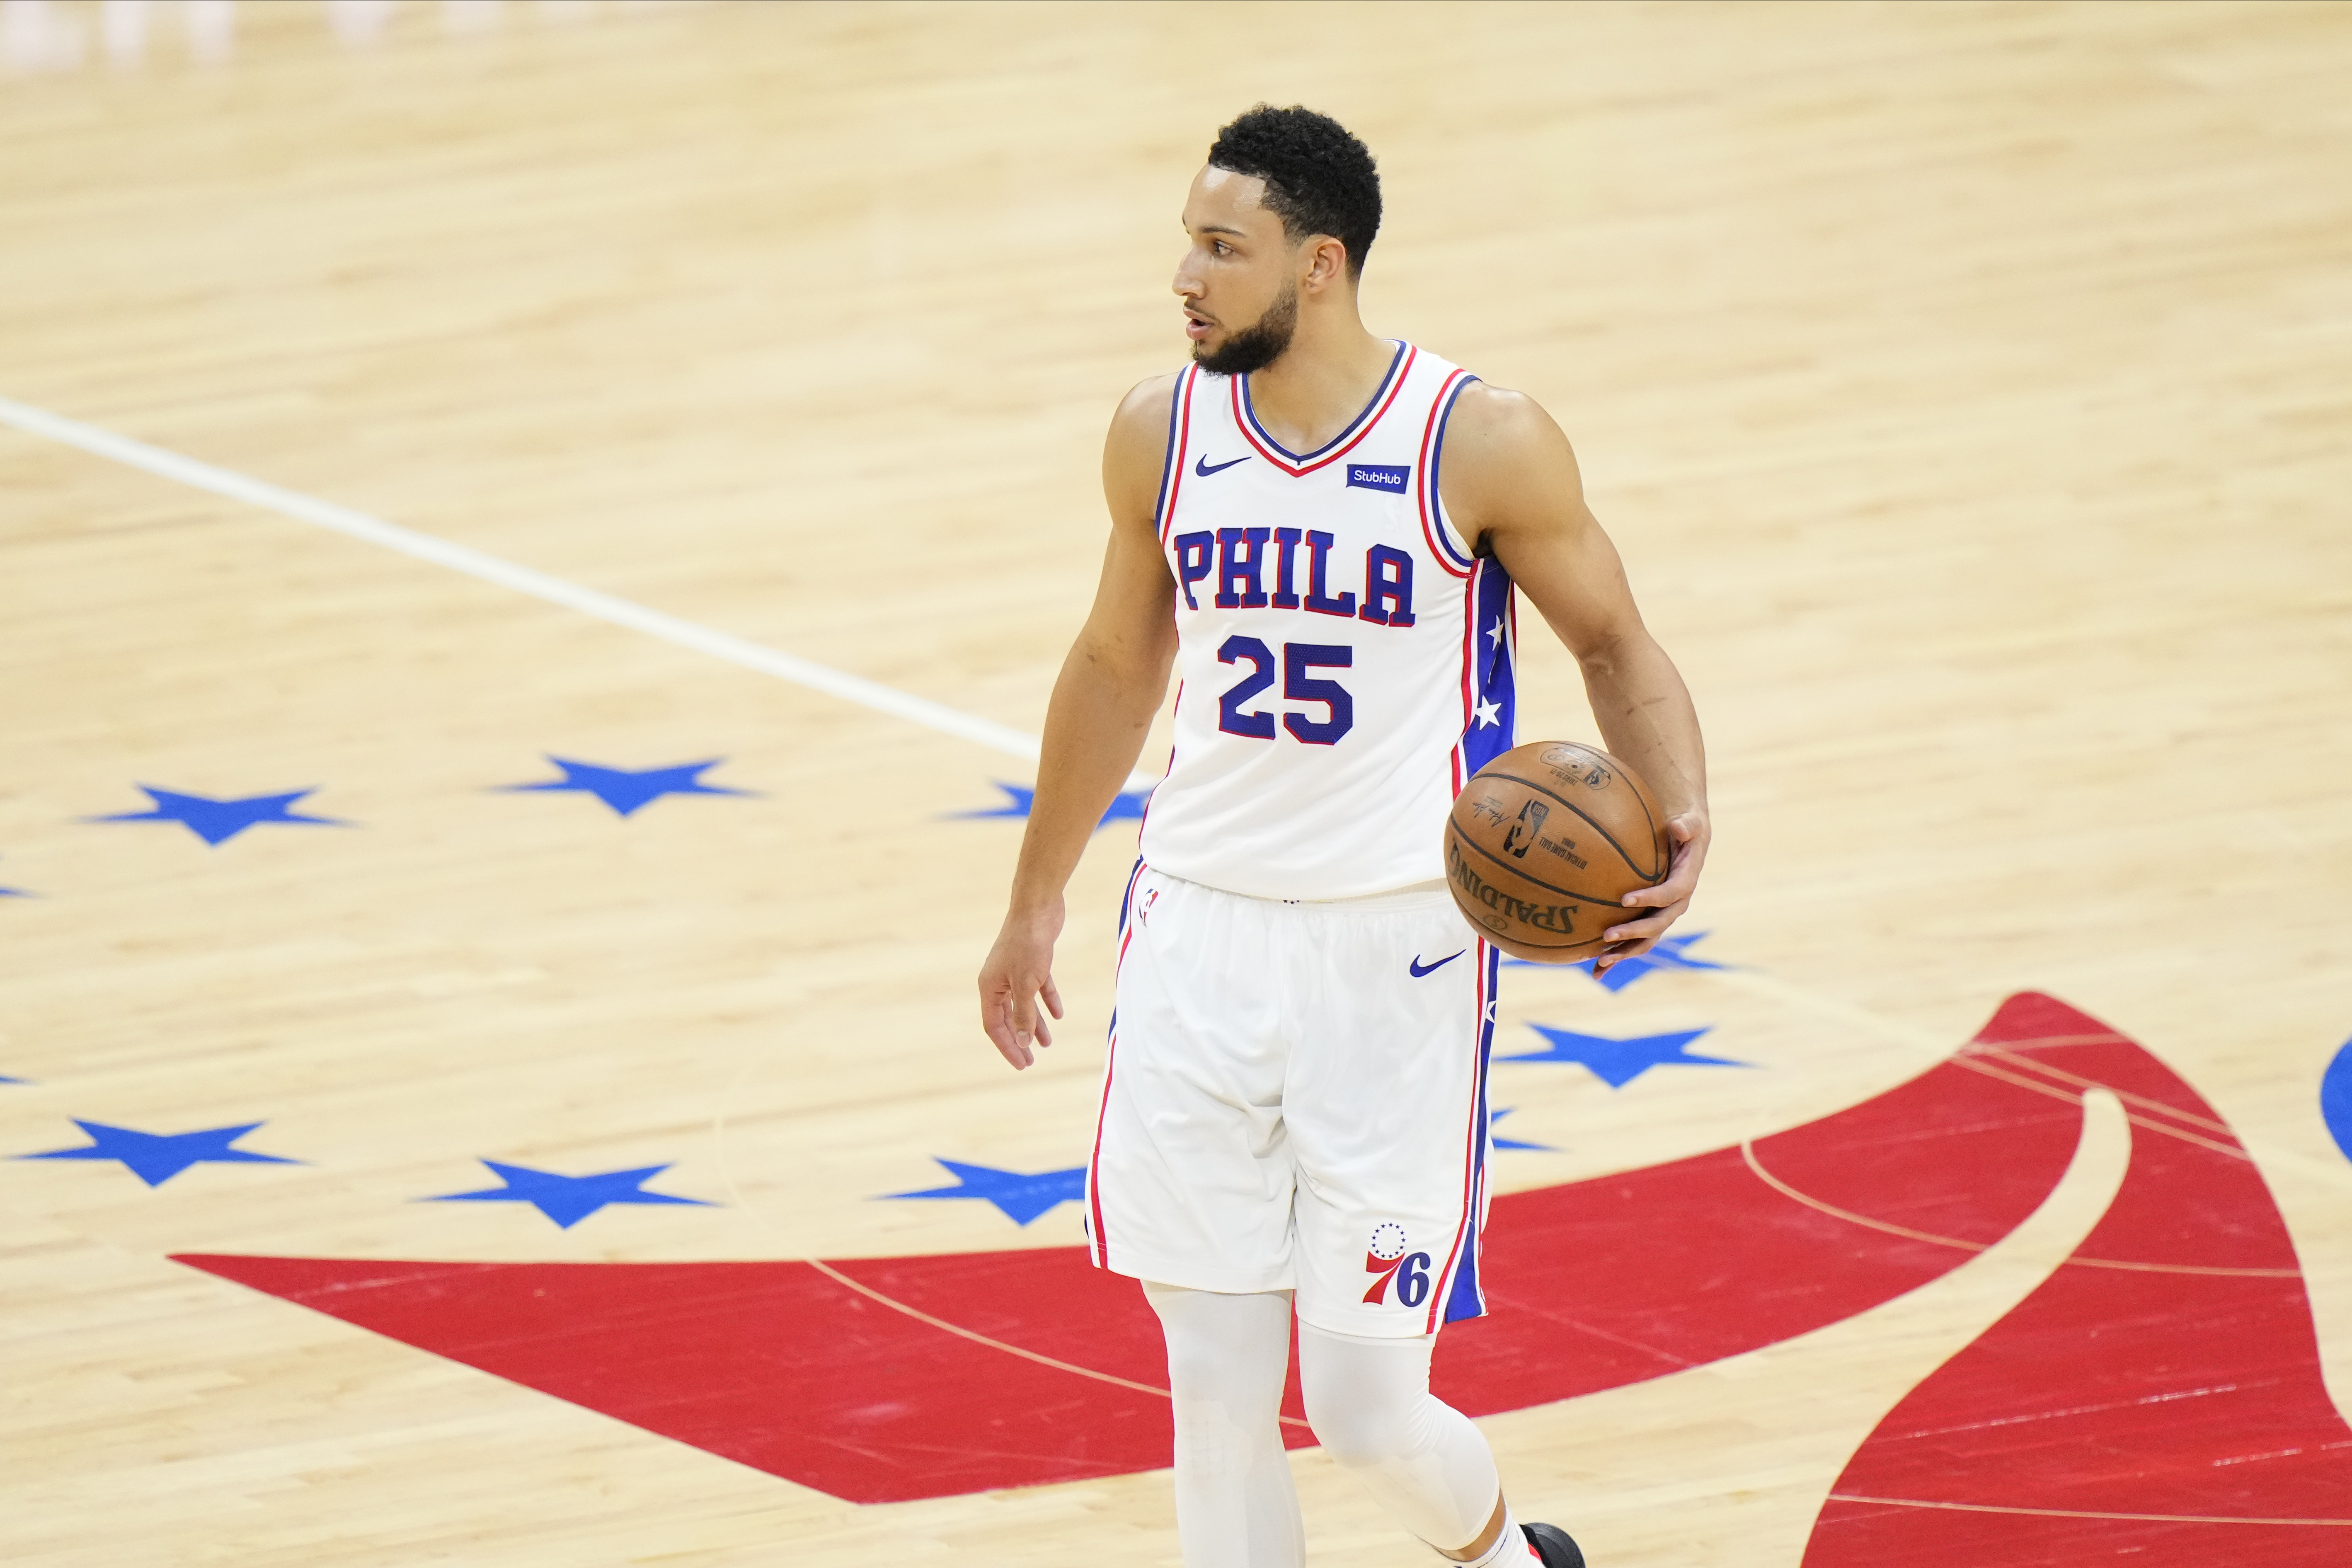 Should the 76ers trade Ben Simmons? NBA executives weigh in